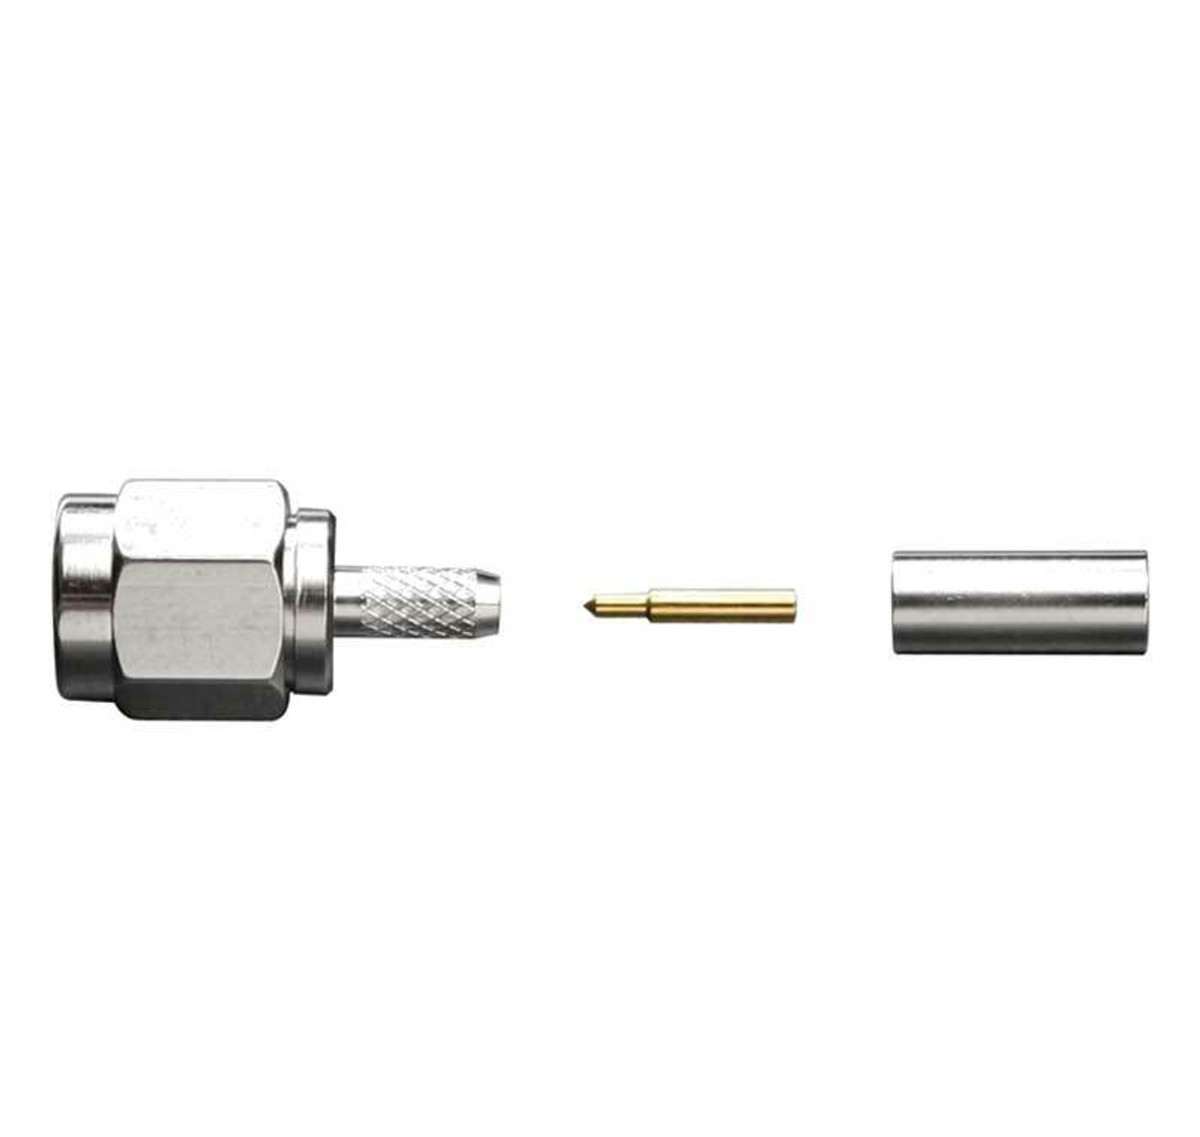 Wilson Electronics weBoost Wilson 971139 SMA-Male Crimp for RG-174 Cable